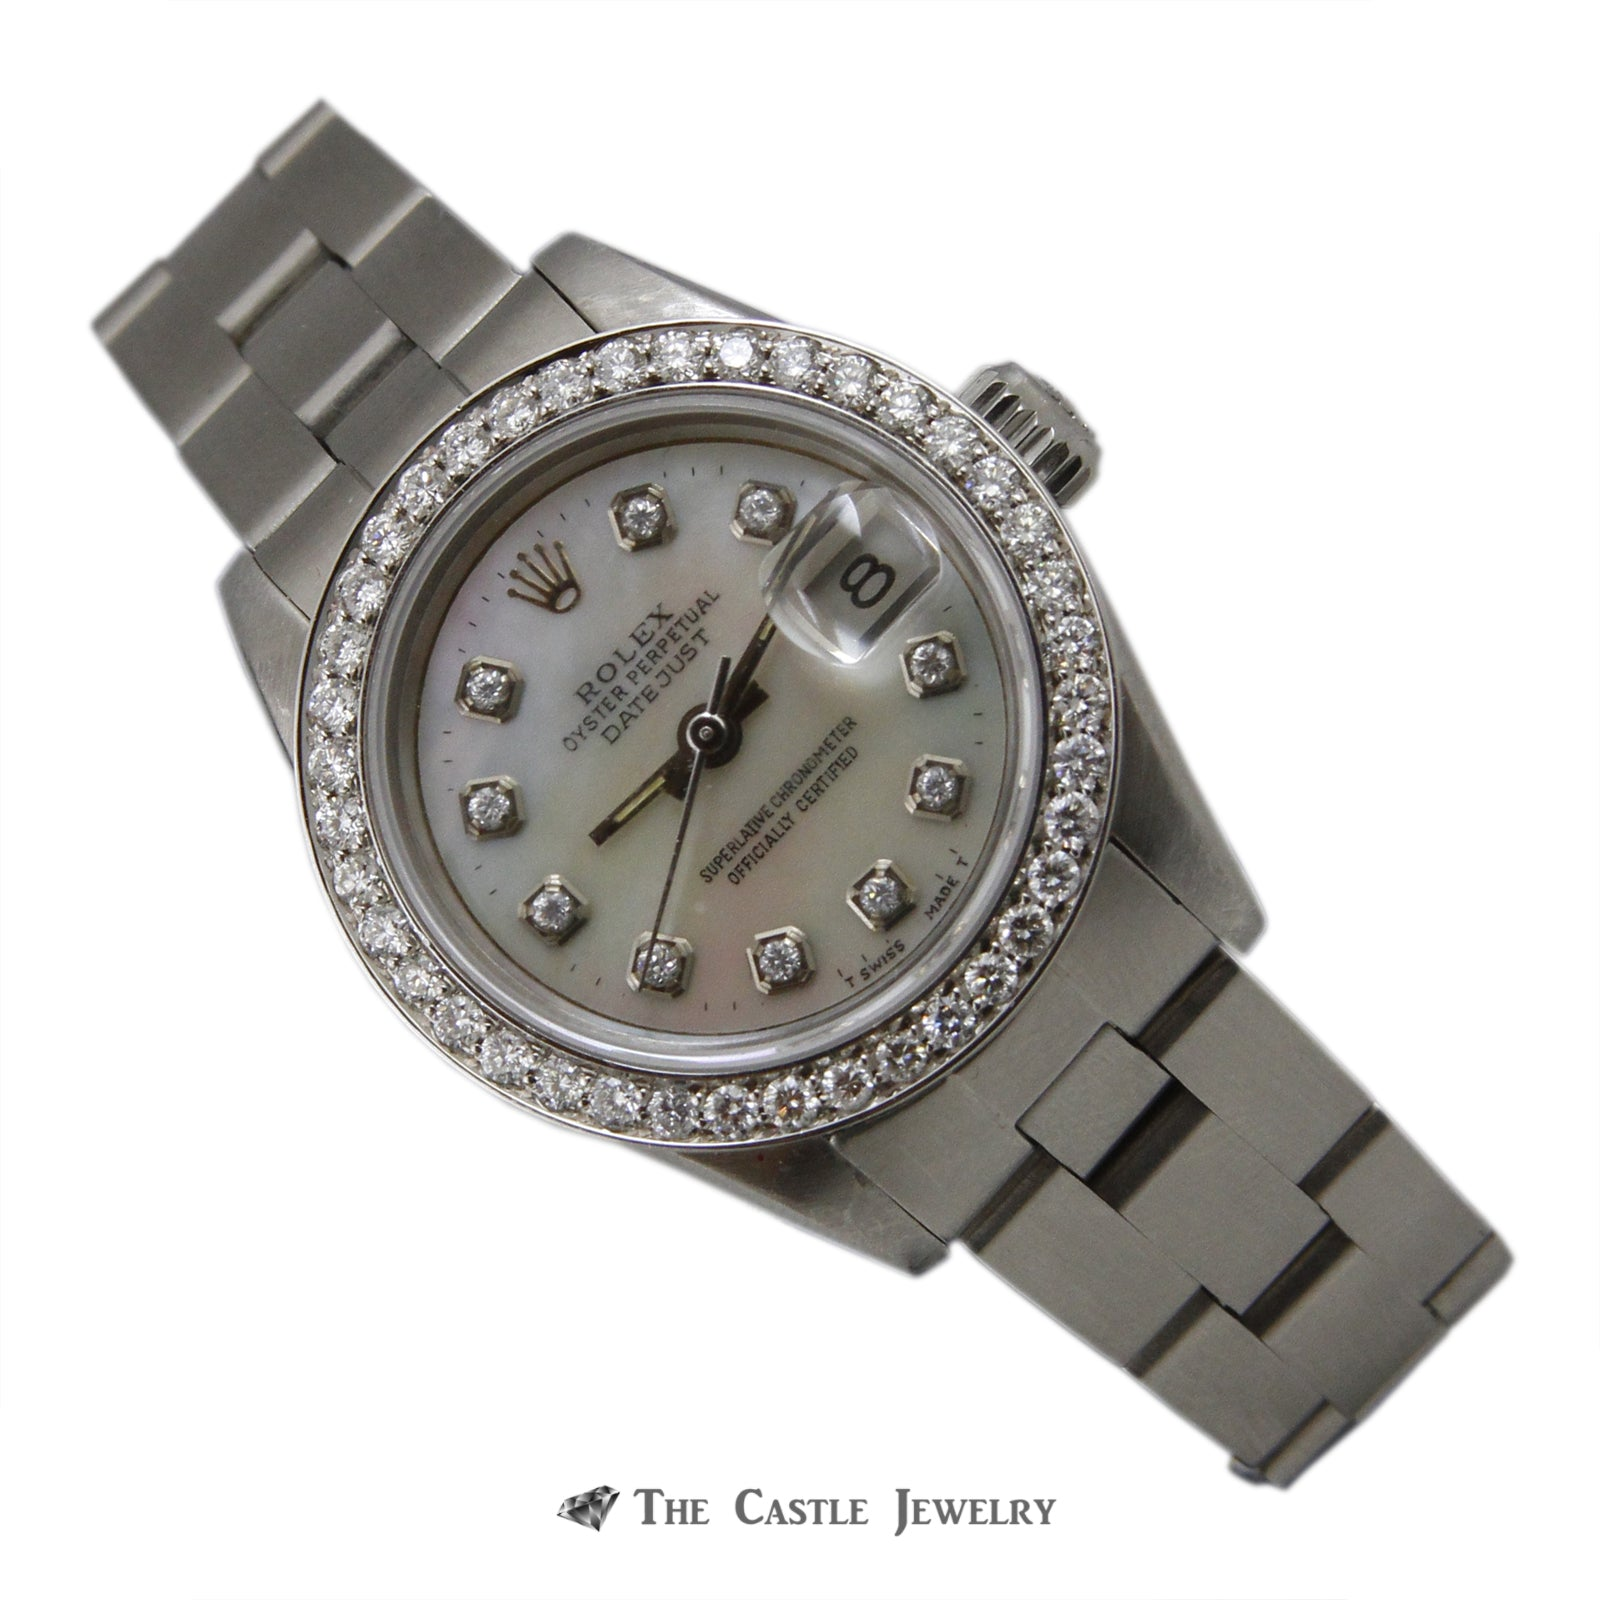 Rolex Datejust 26mm Watch Stainless Steel w/ Mother of Pearl Diamond Dial & Bezel 69160-6